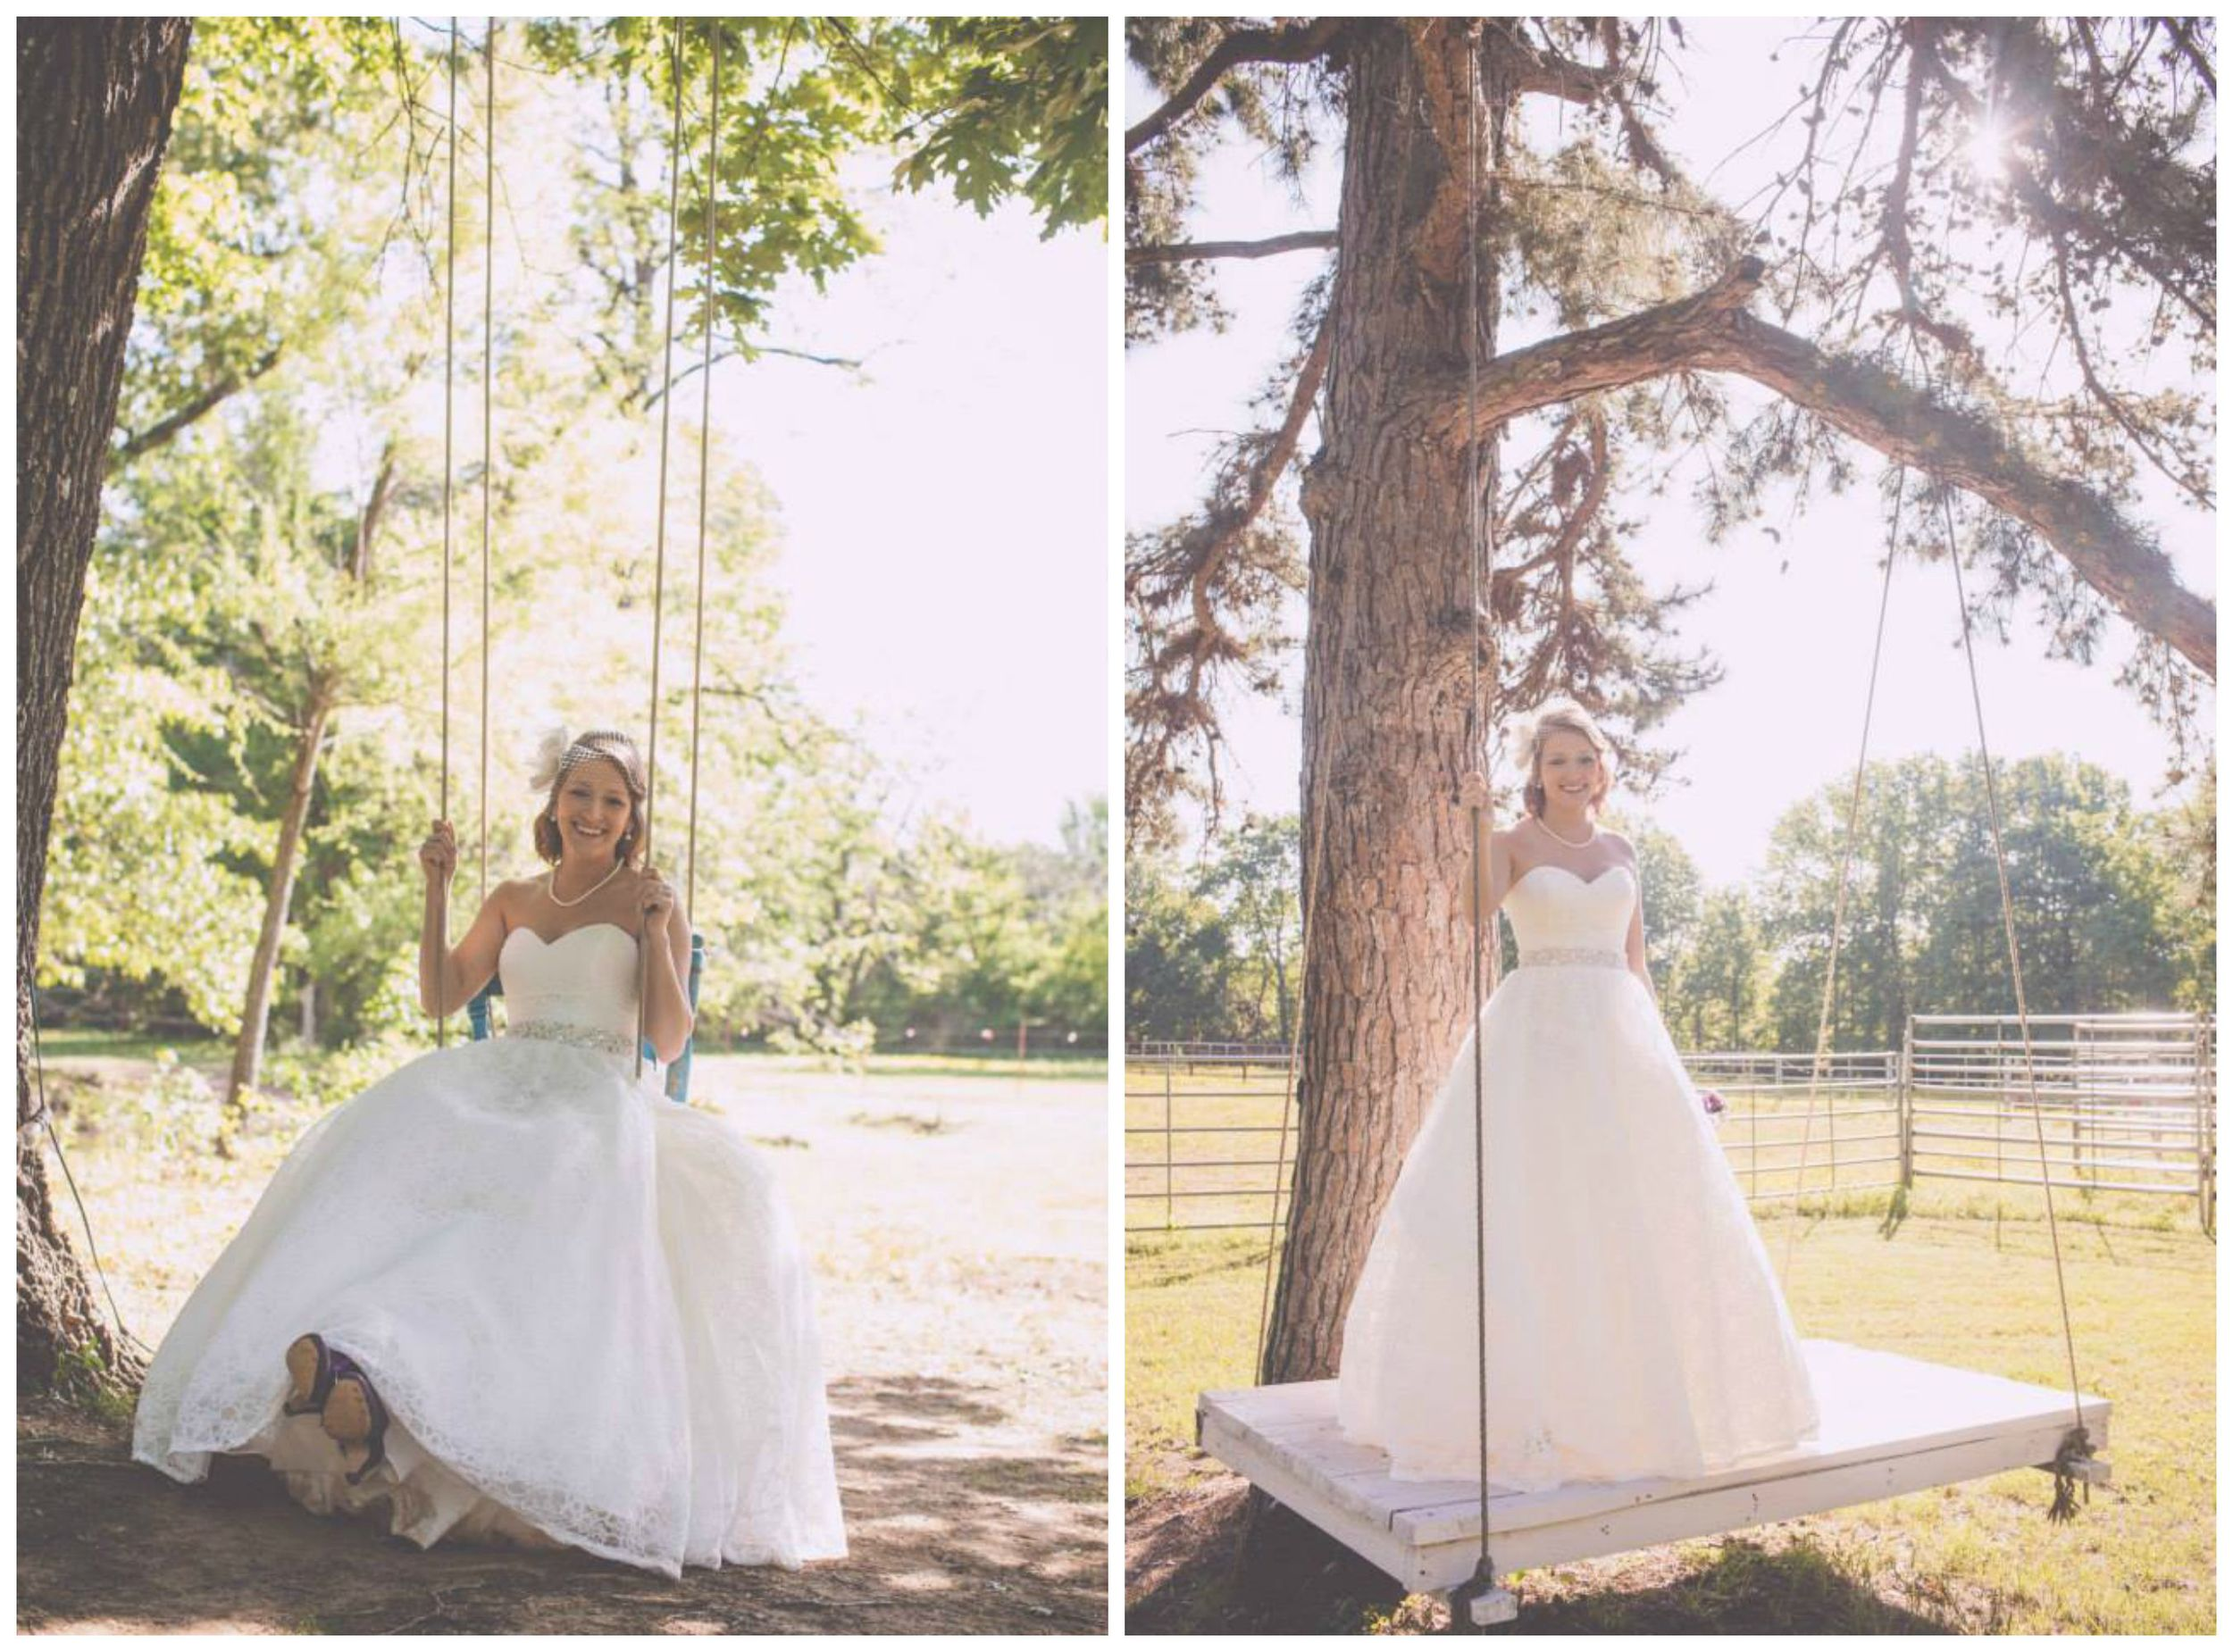 Liz Chrisman Photography . Amanda wasn't a Barn Bride either, but her bridals were taken at The Barn, and they were so fun!